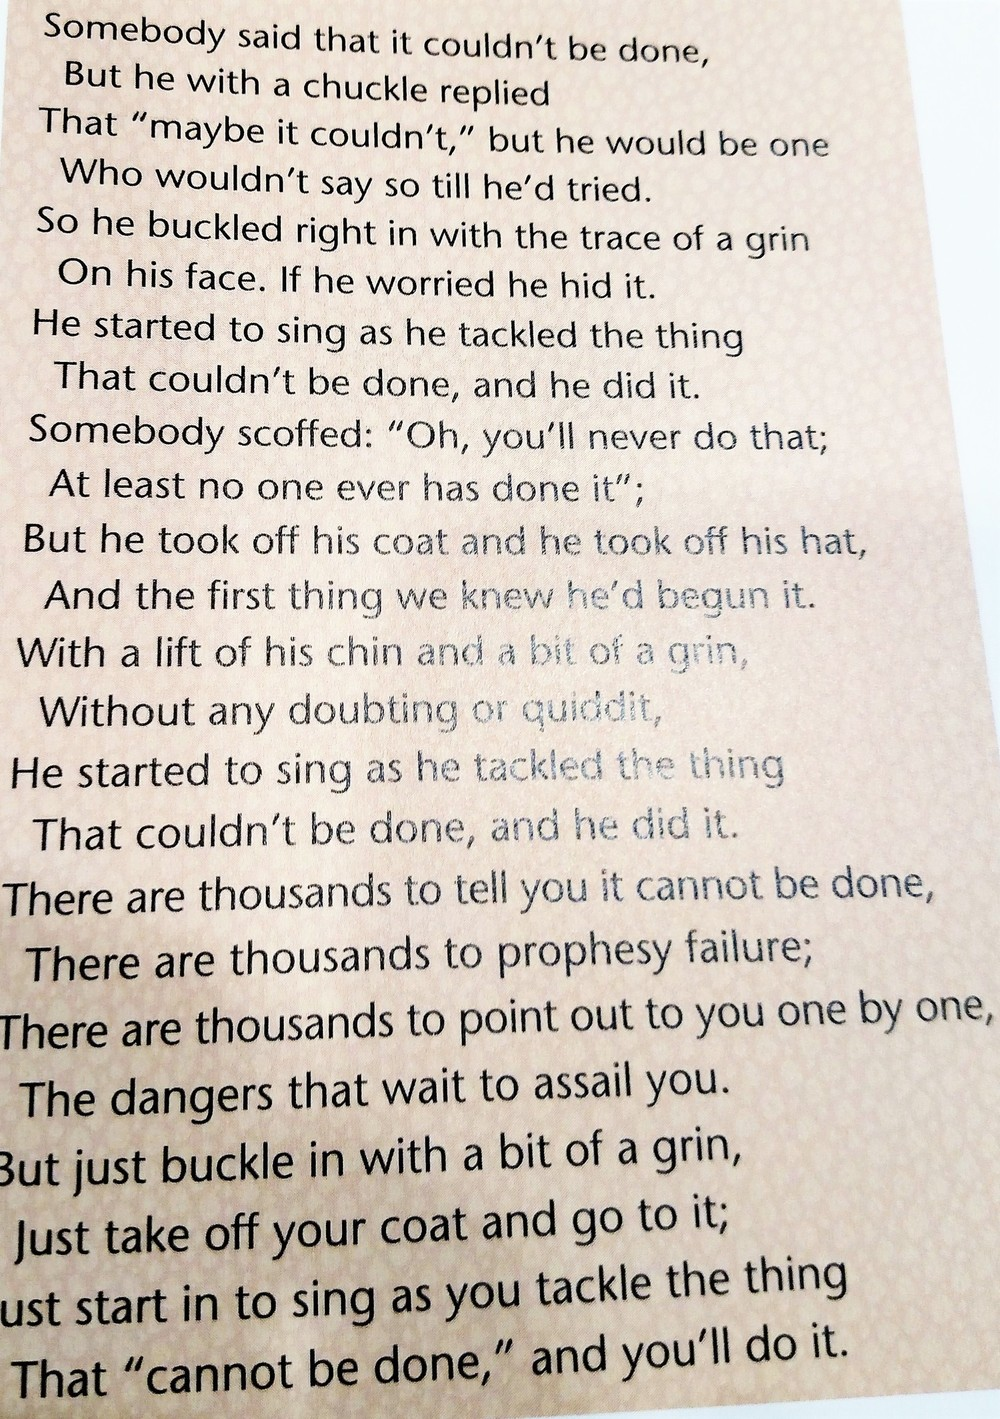 Bible's inspirational poem to his players before playing A & M